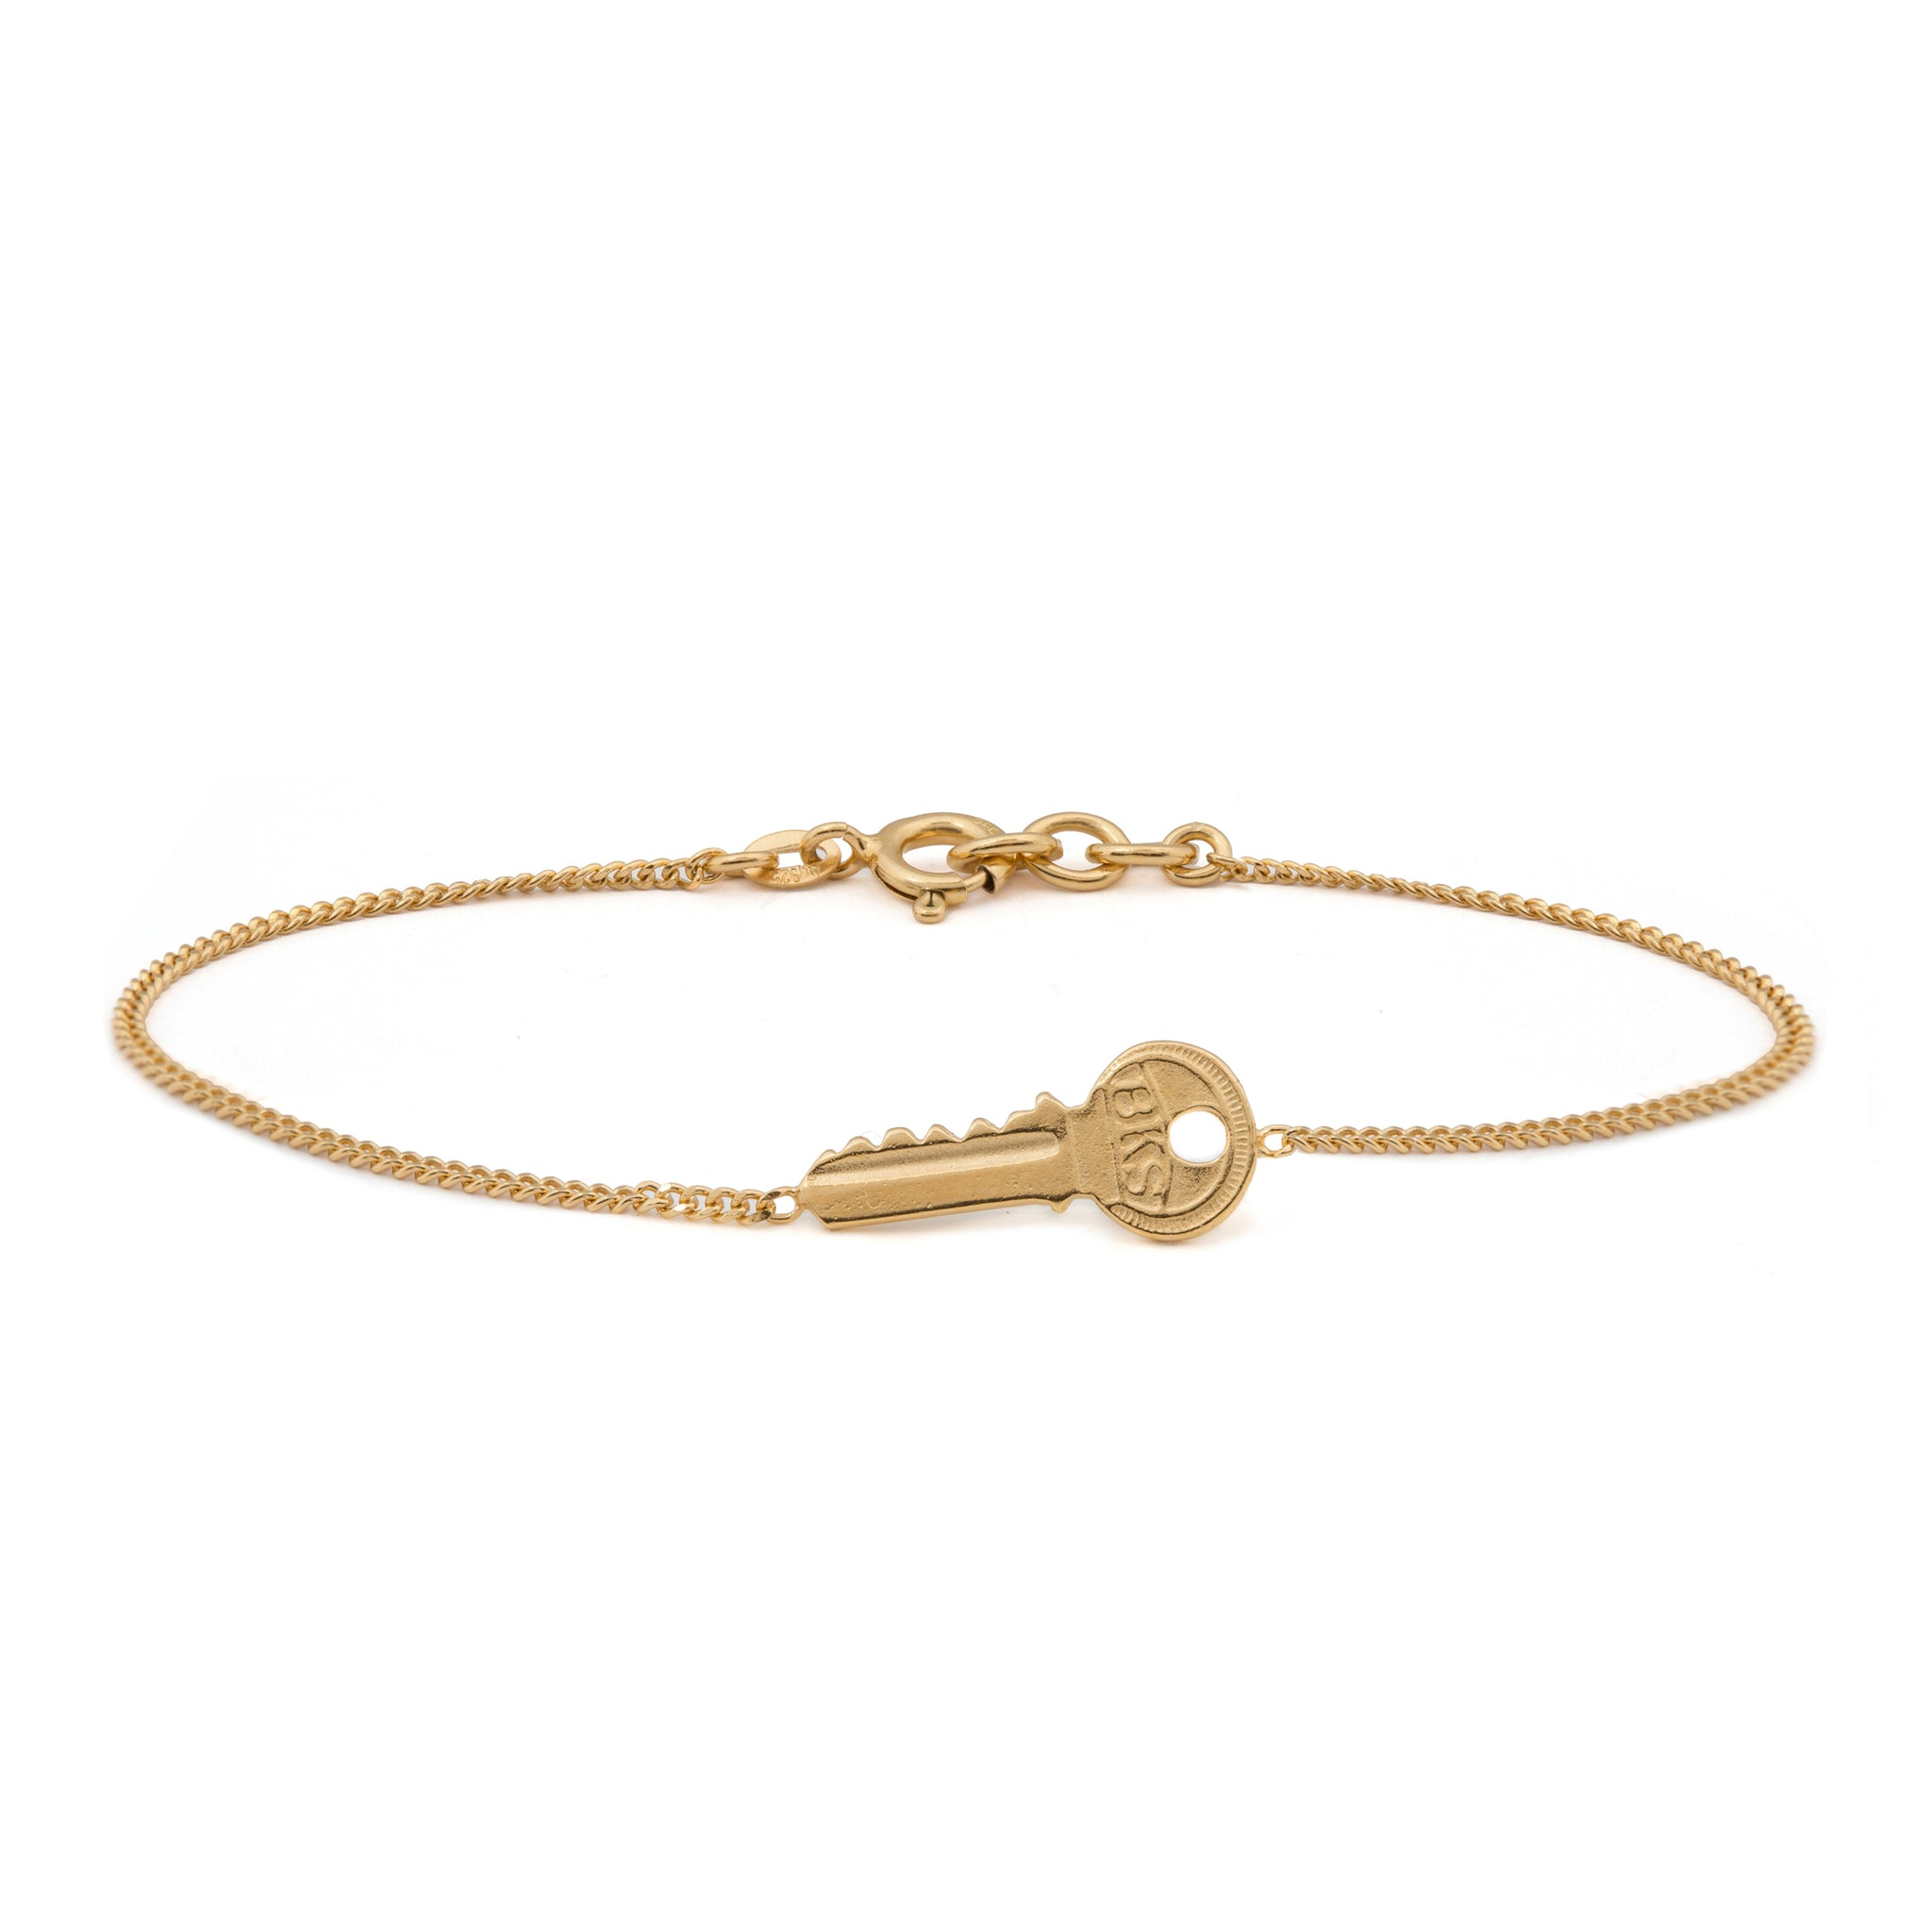 products delicate gold bracelet delicatefinal minc studio